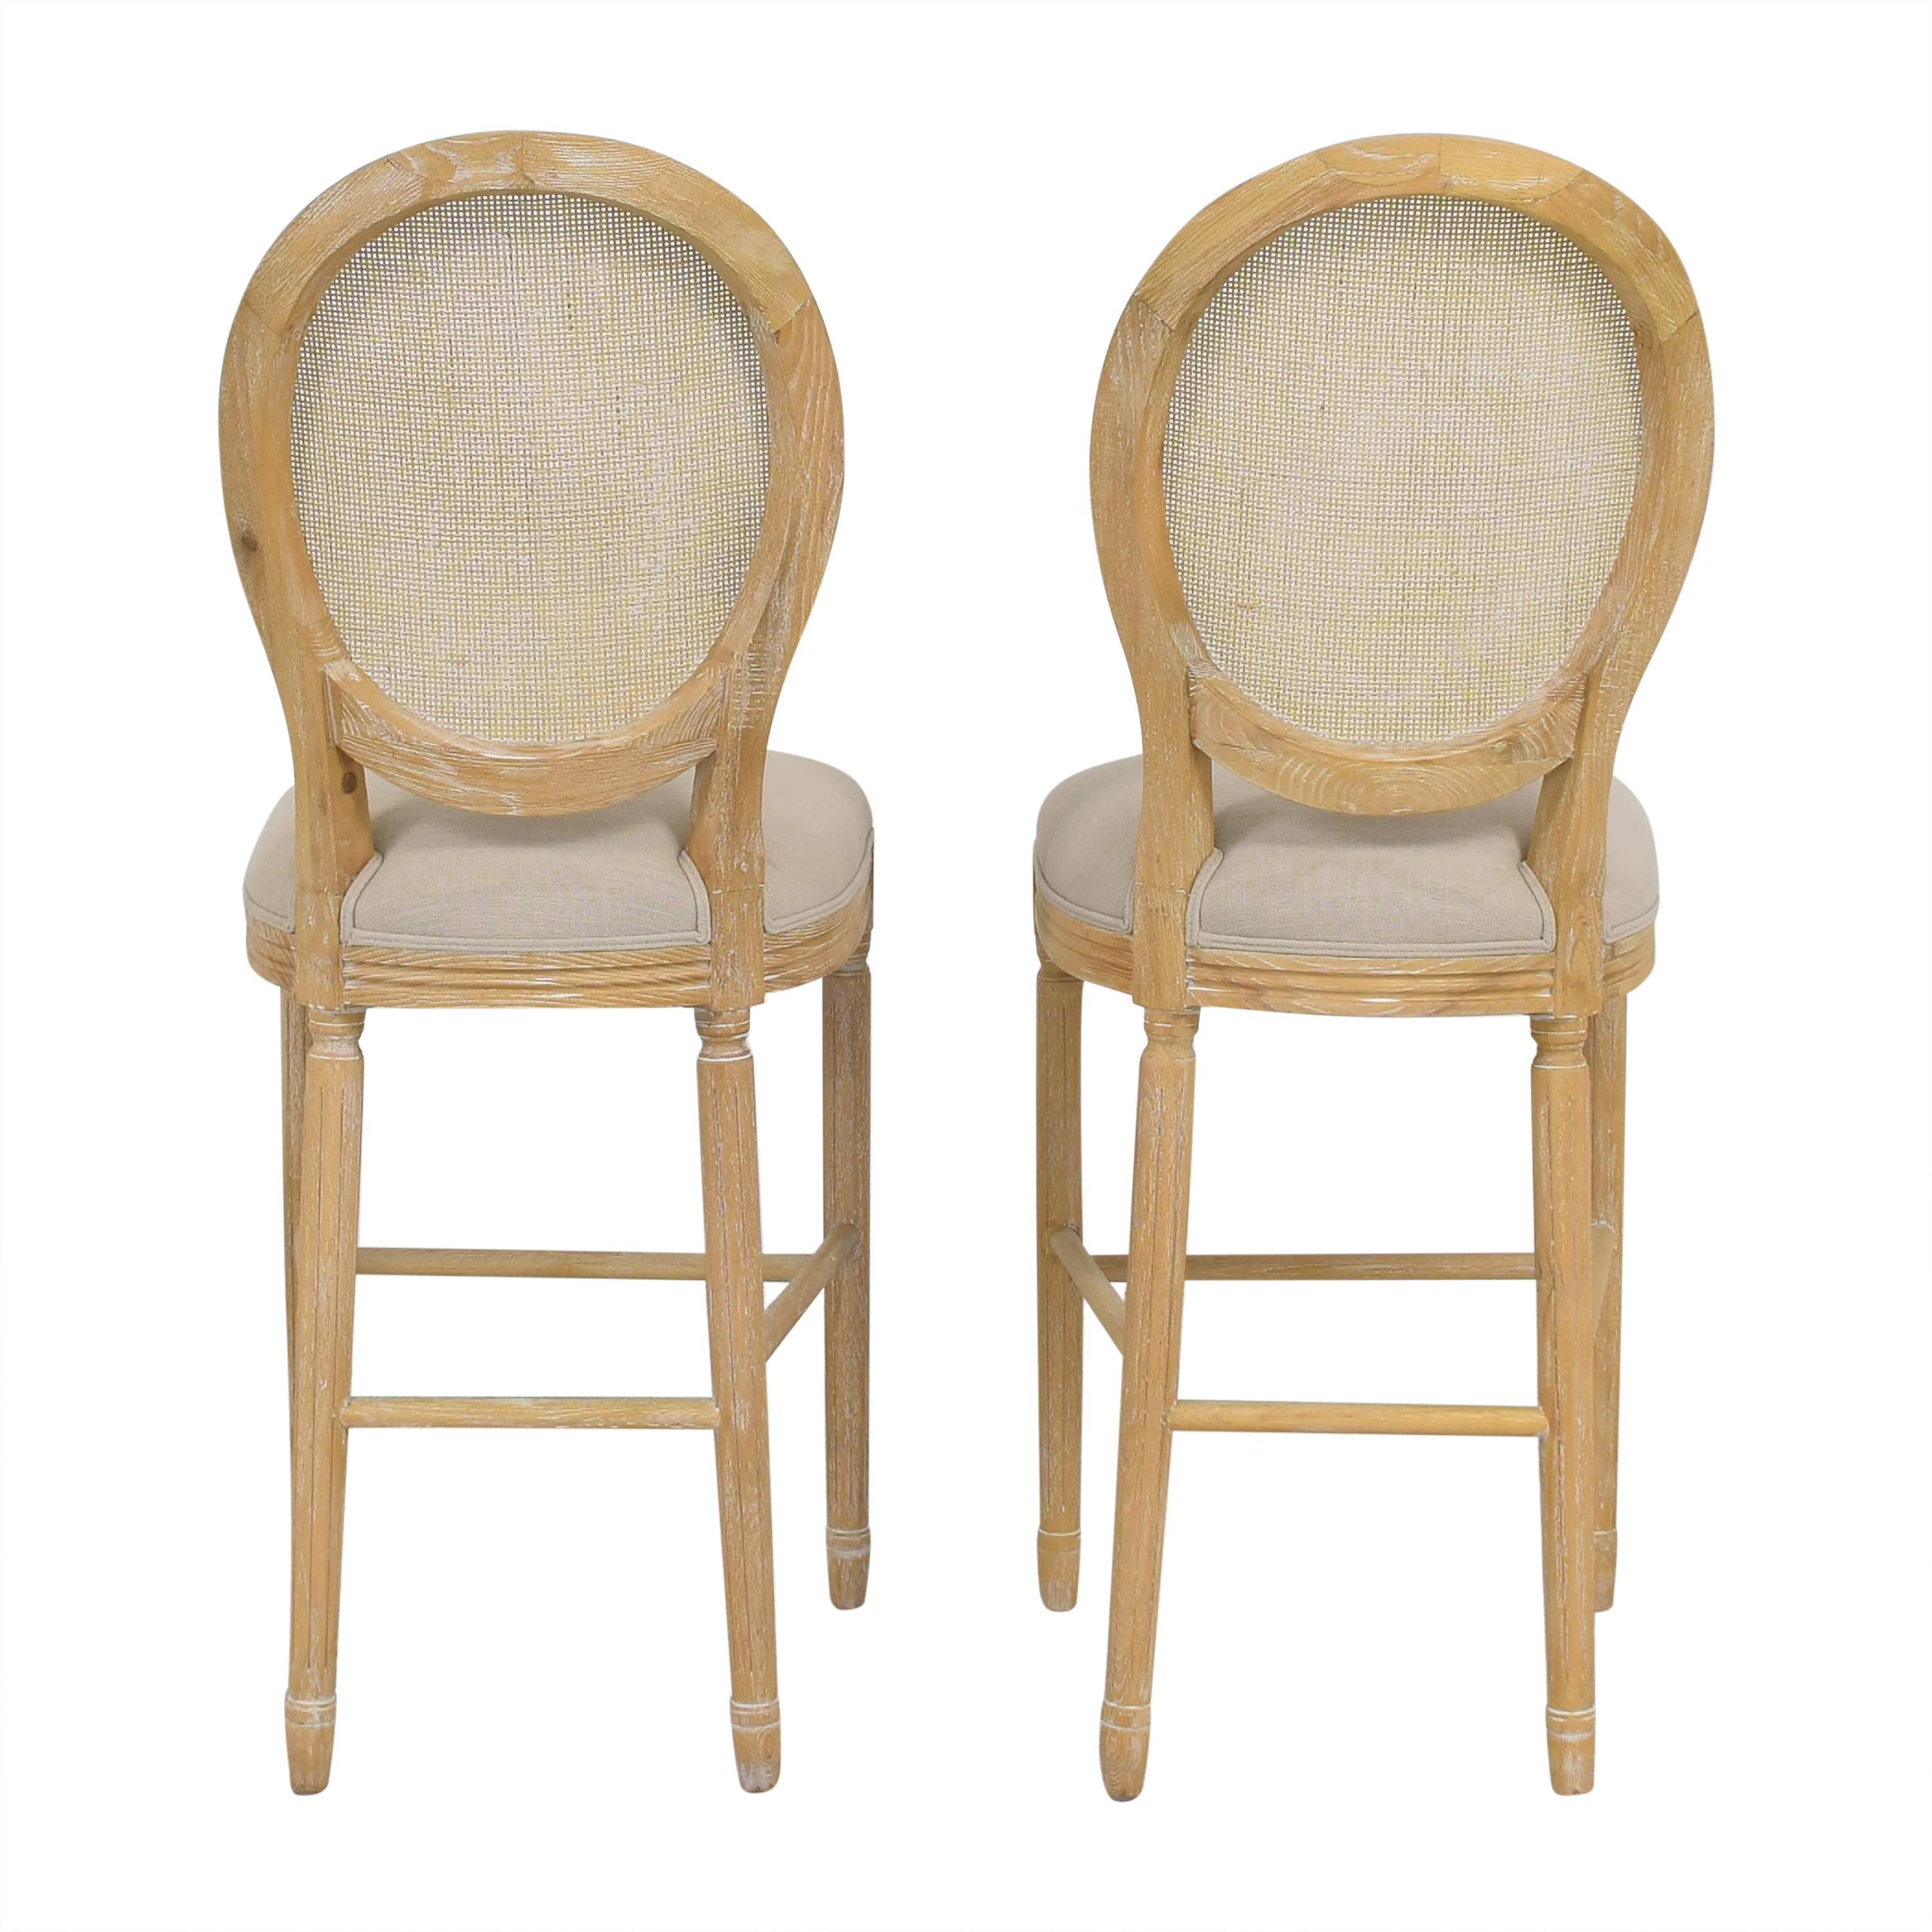 Wisteria Wisteria Upholstered Bar Stools price